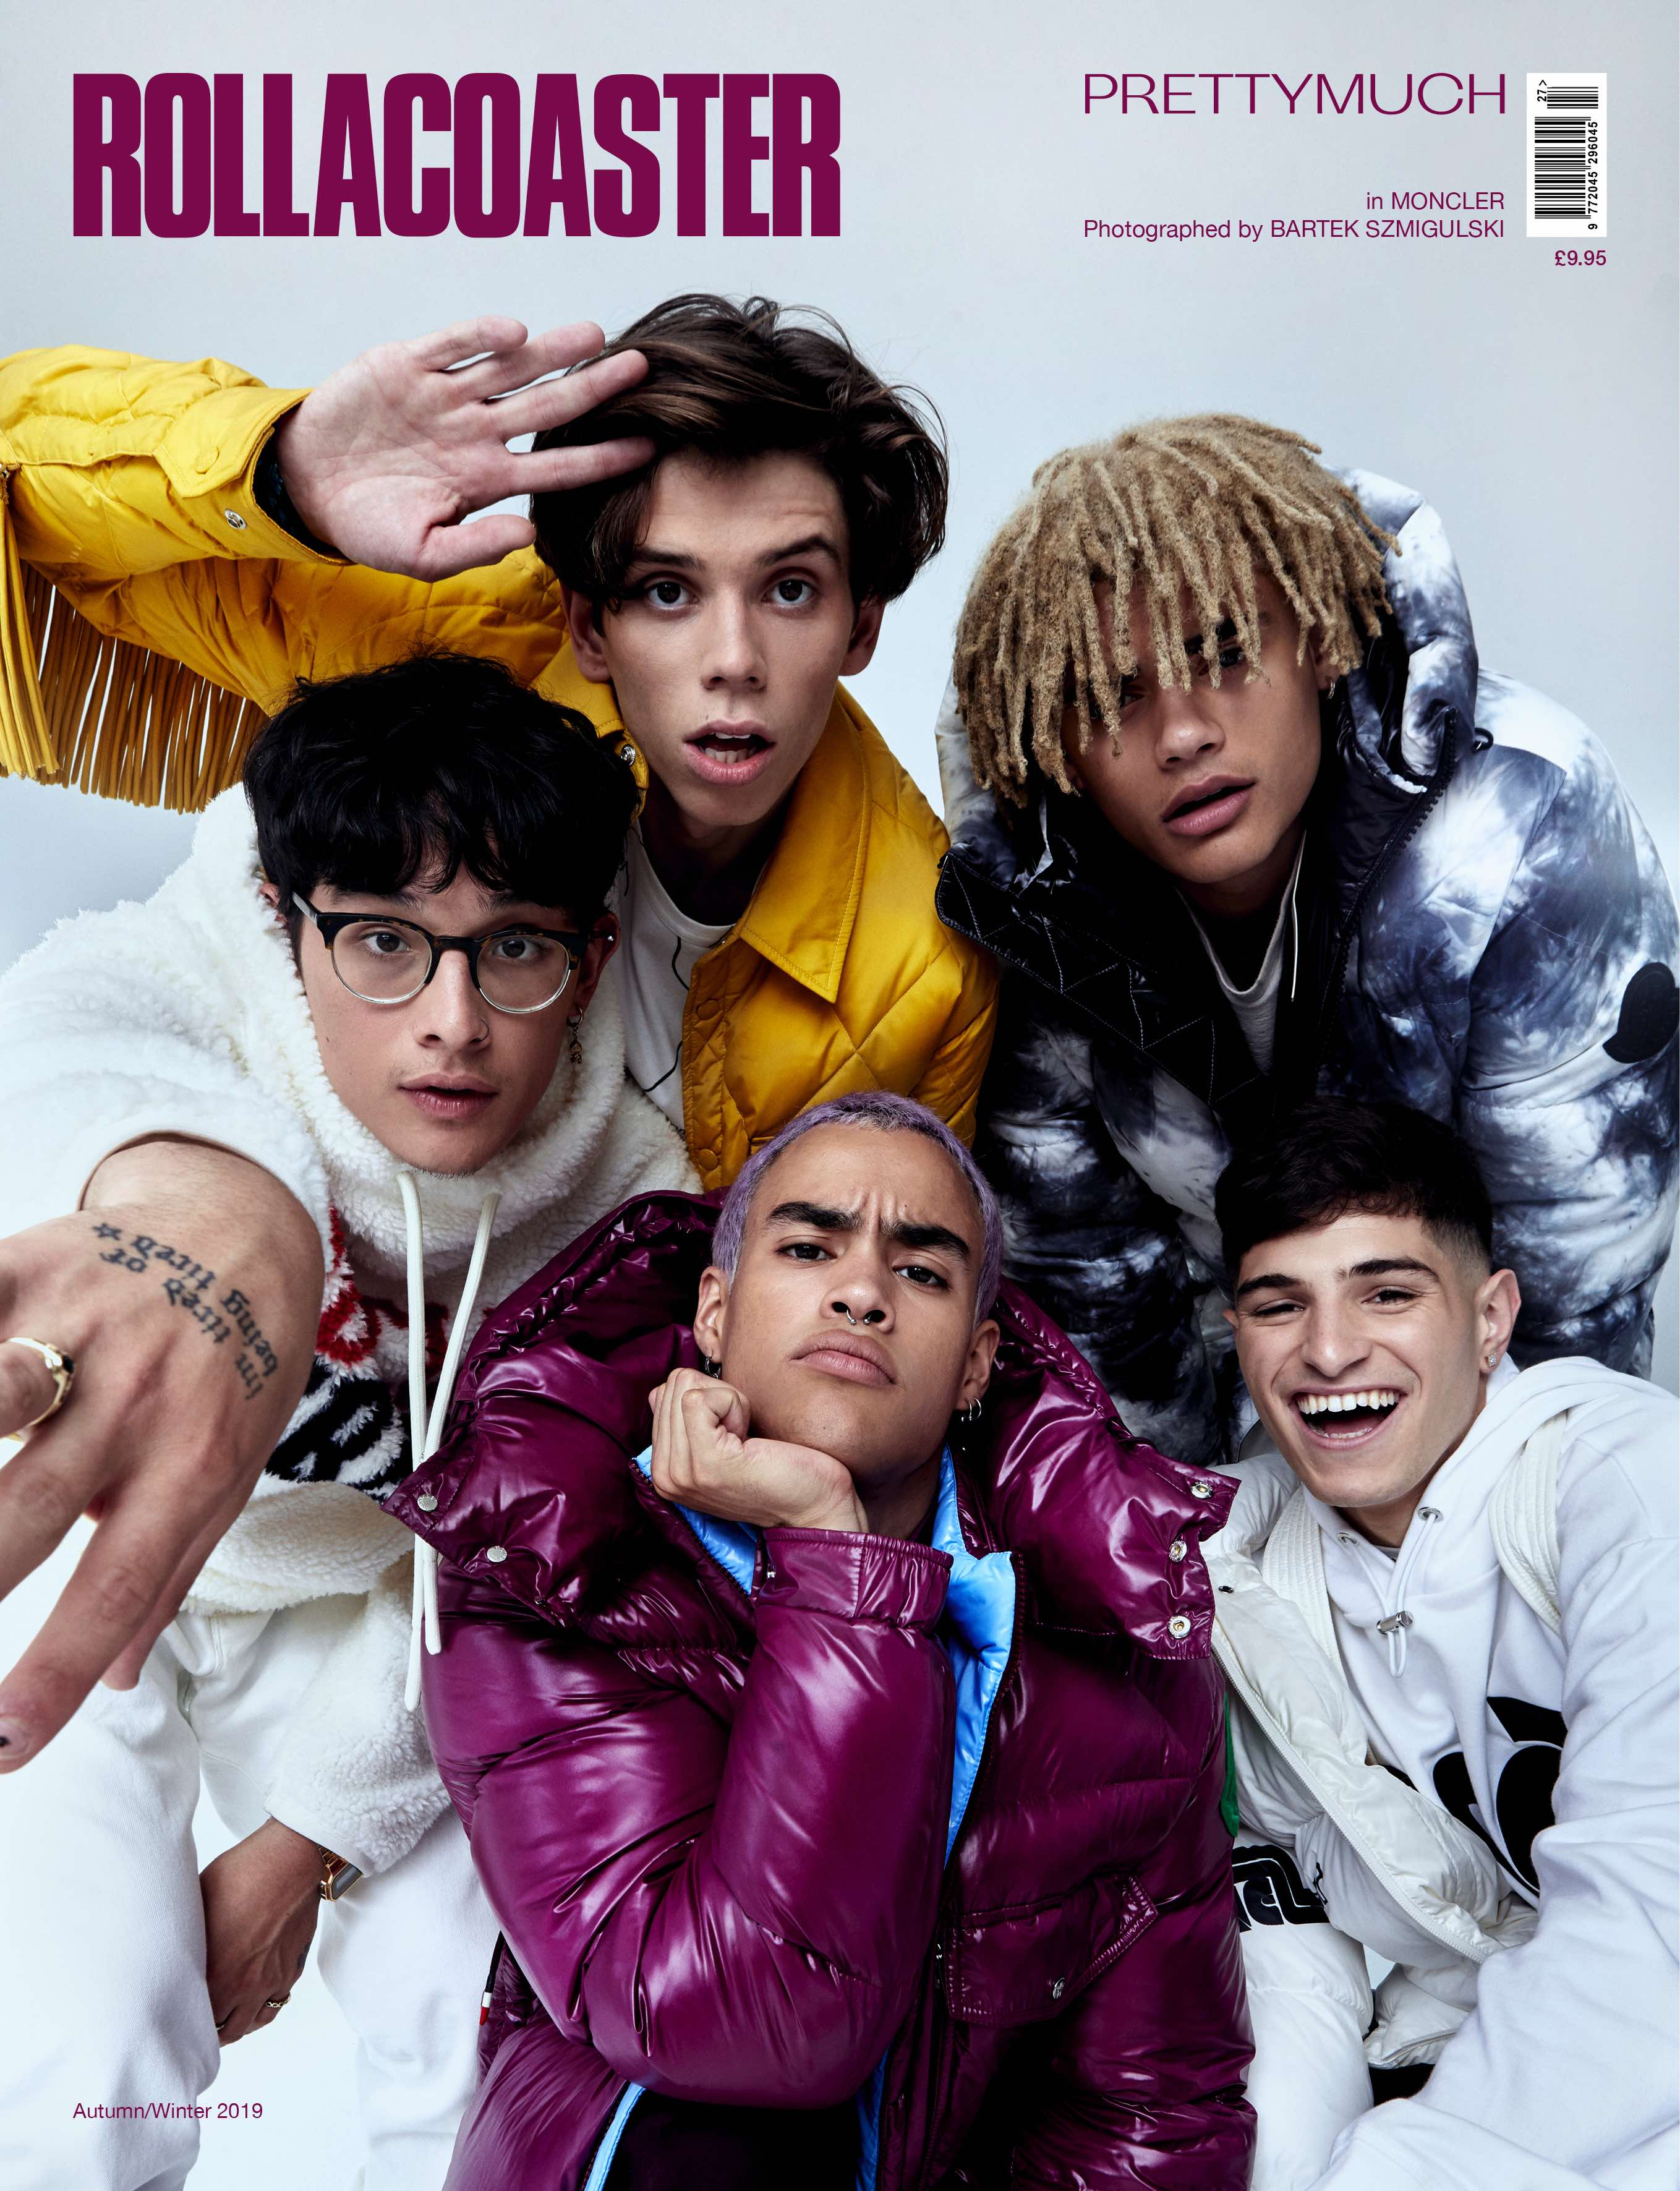 Prettymuch rollacoaster cover boy band aw19 moncler